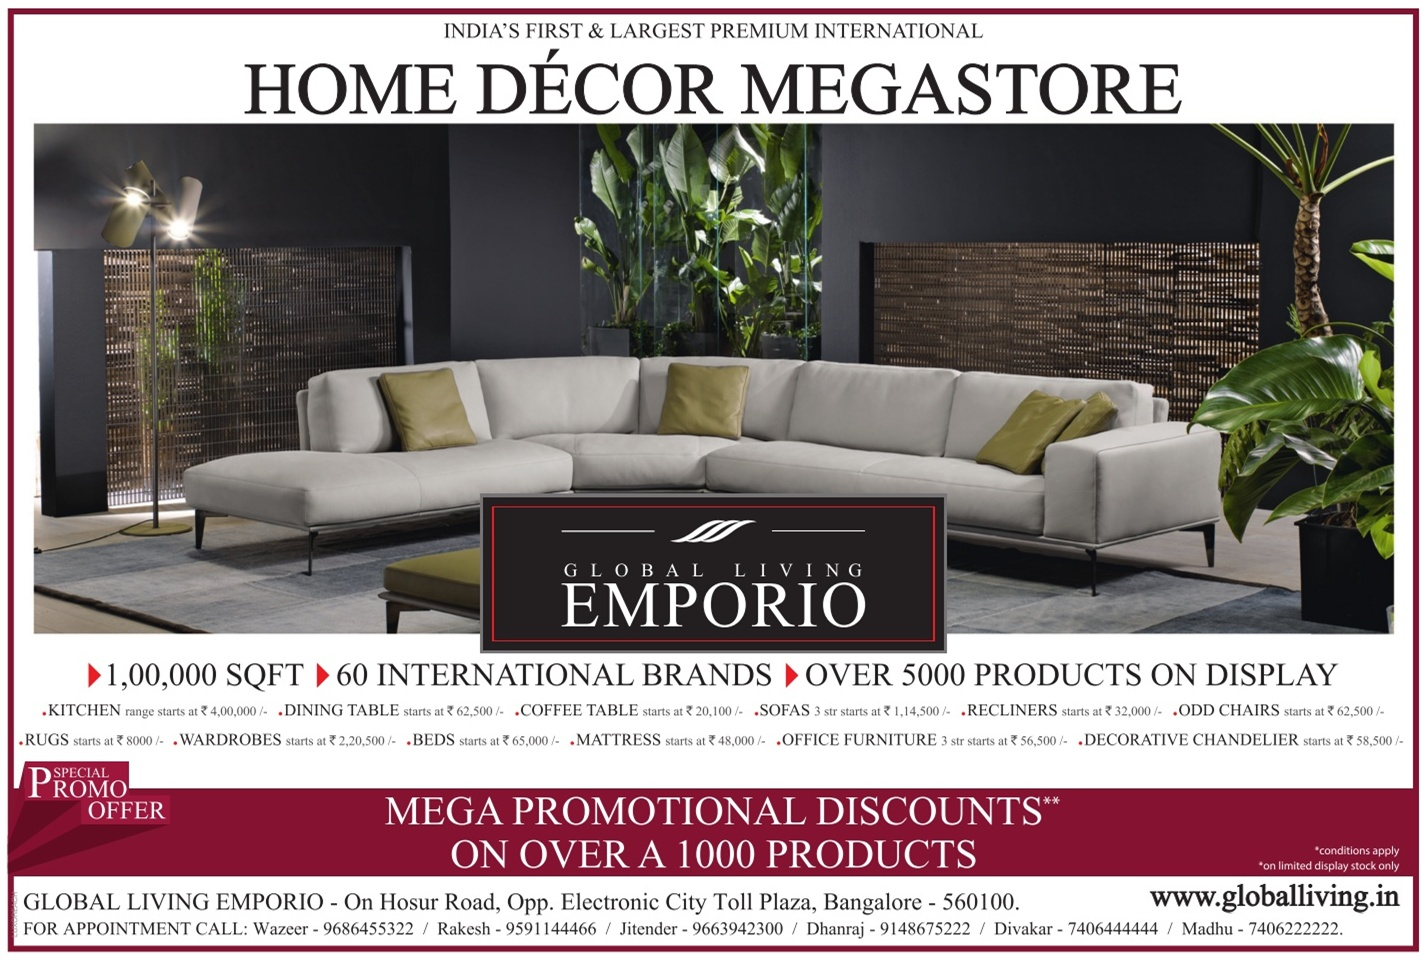 Global Living Emporio Home Decor